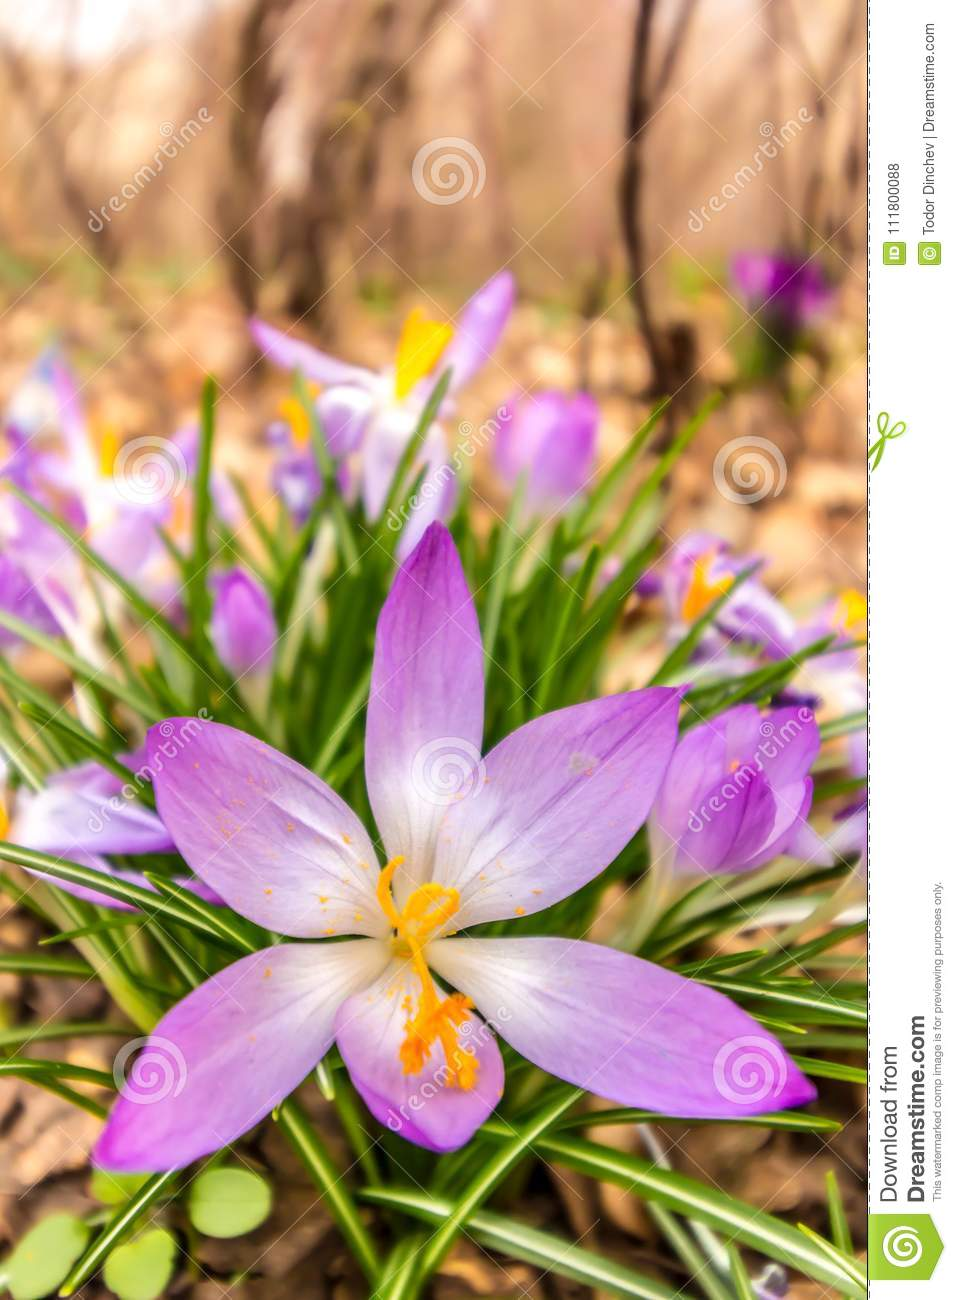 Crocus Plural Crocuses Or Croci Stock Photo Image Of Botany